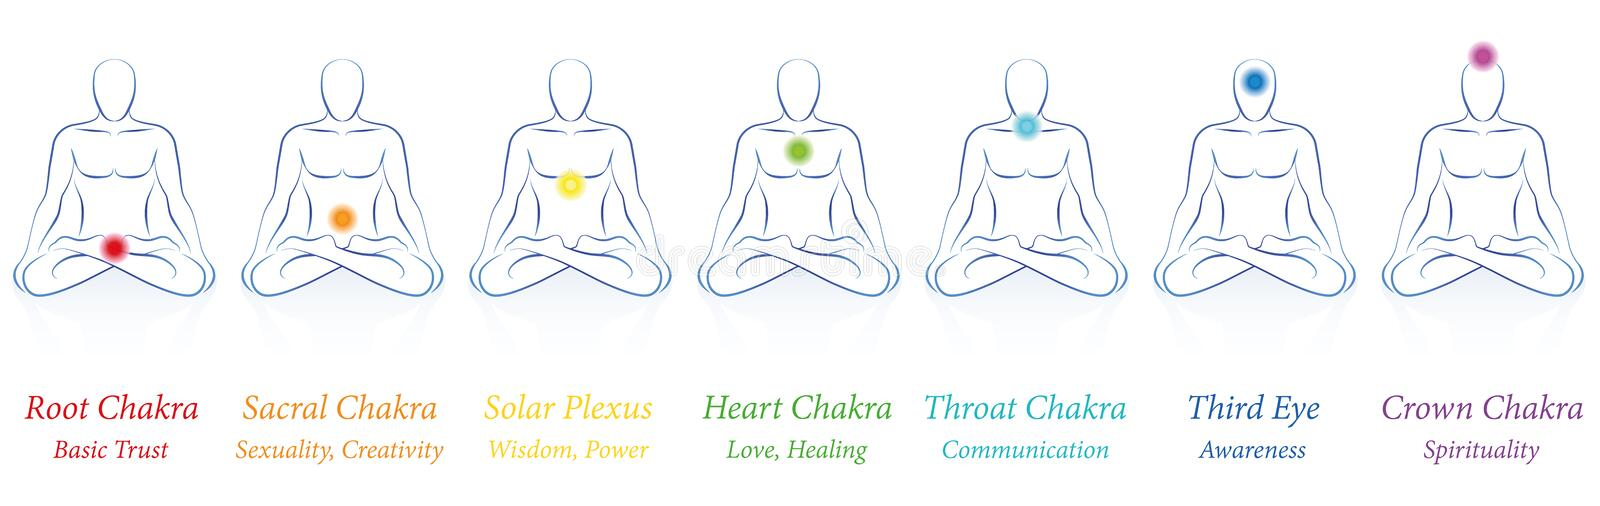 Download Chakras Seven Colors Meanings Man Stock Vector